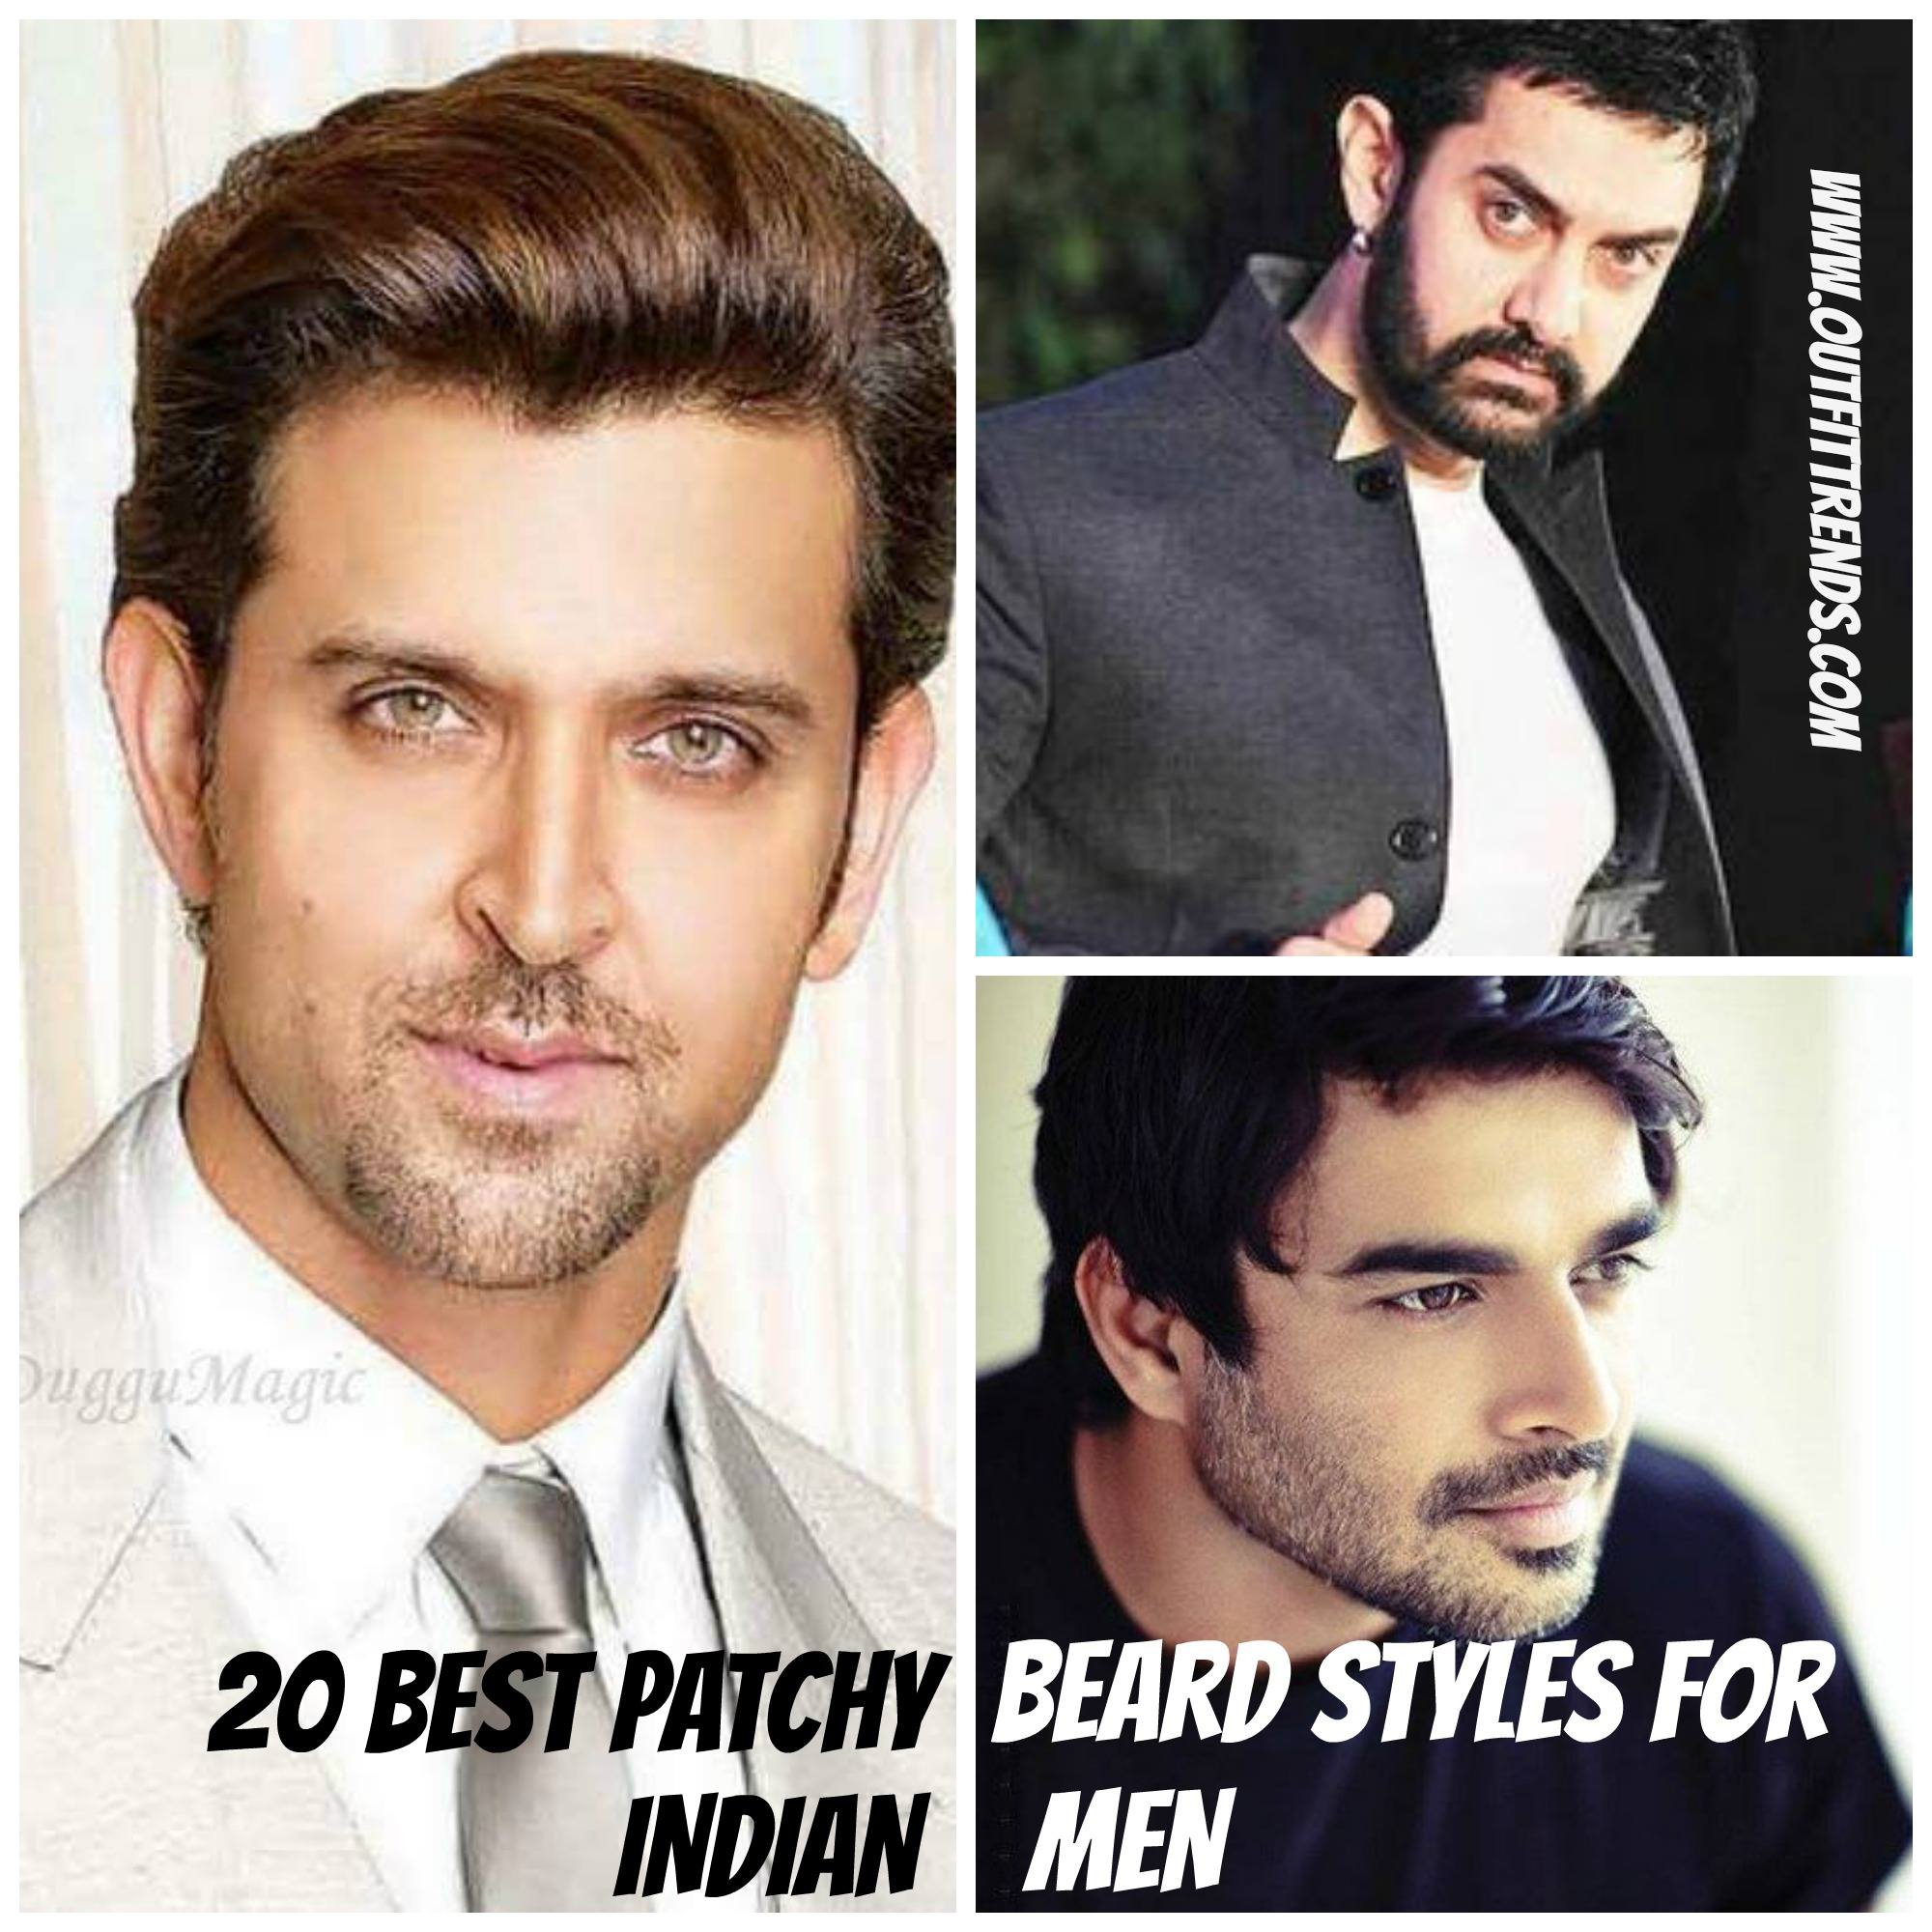 best20-patchy-beard-style-for-indian-men 20 Best Patchy Beard Styles for Indian Men | Tips and Styling Ideas